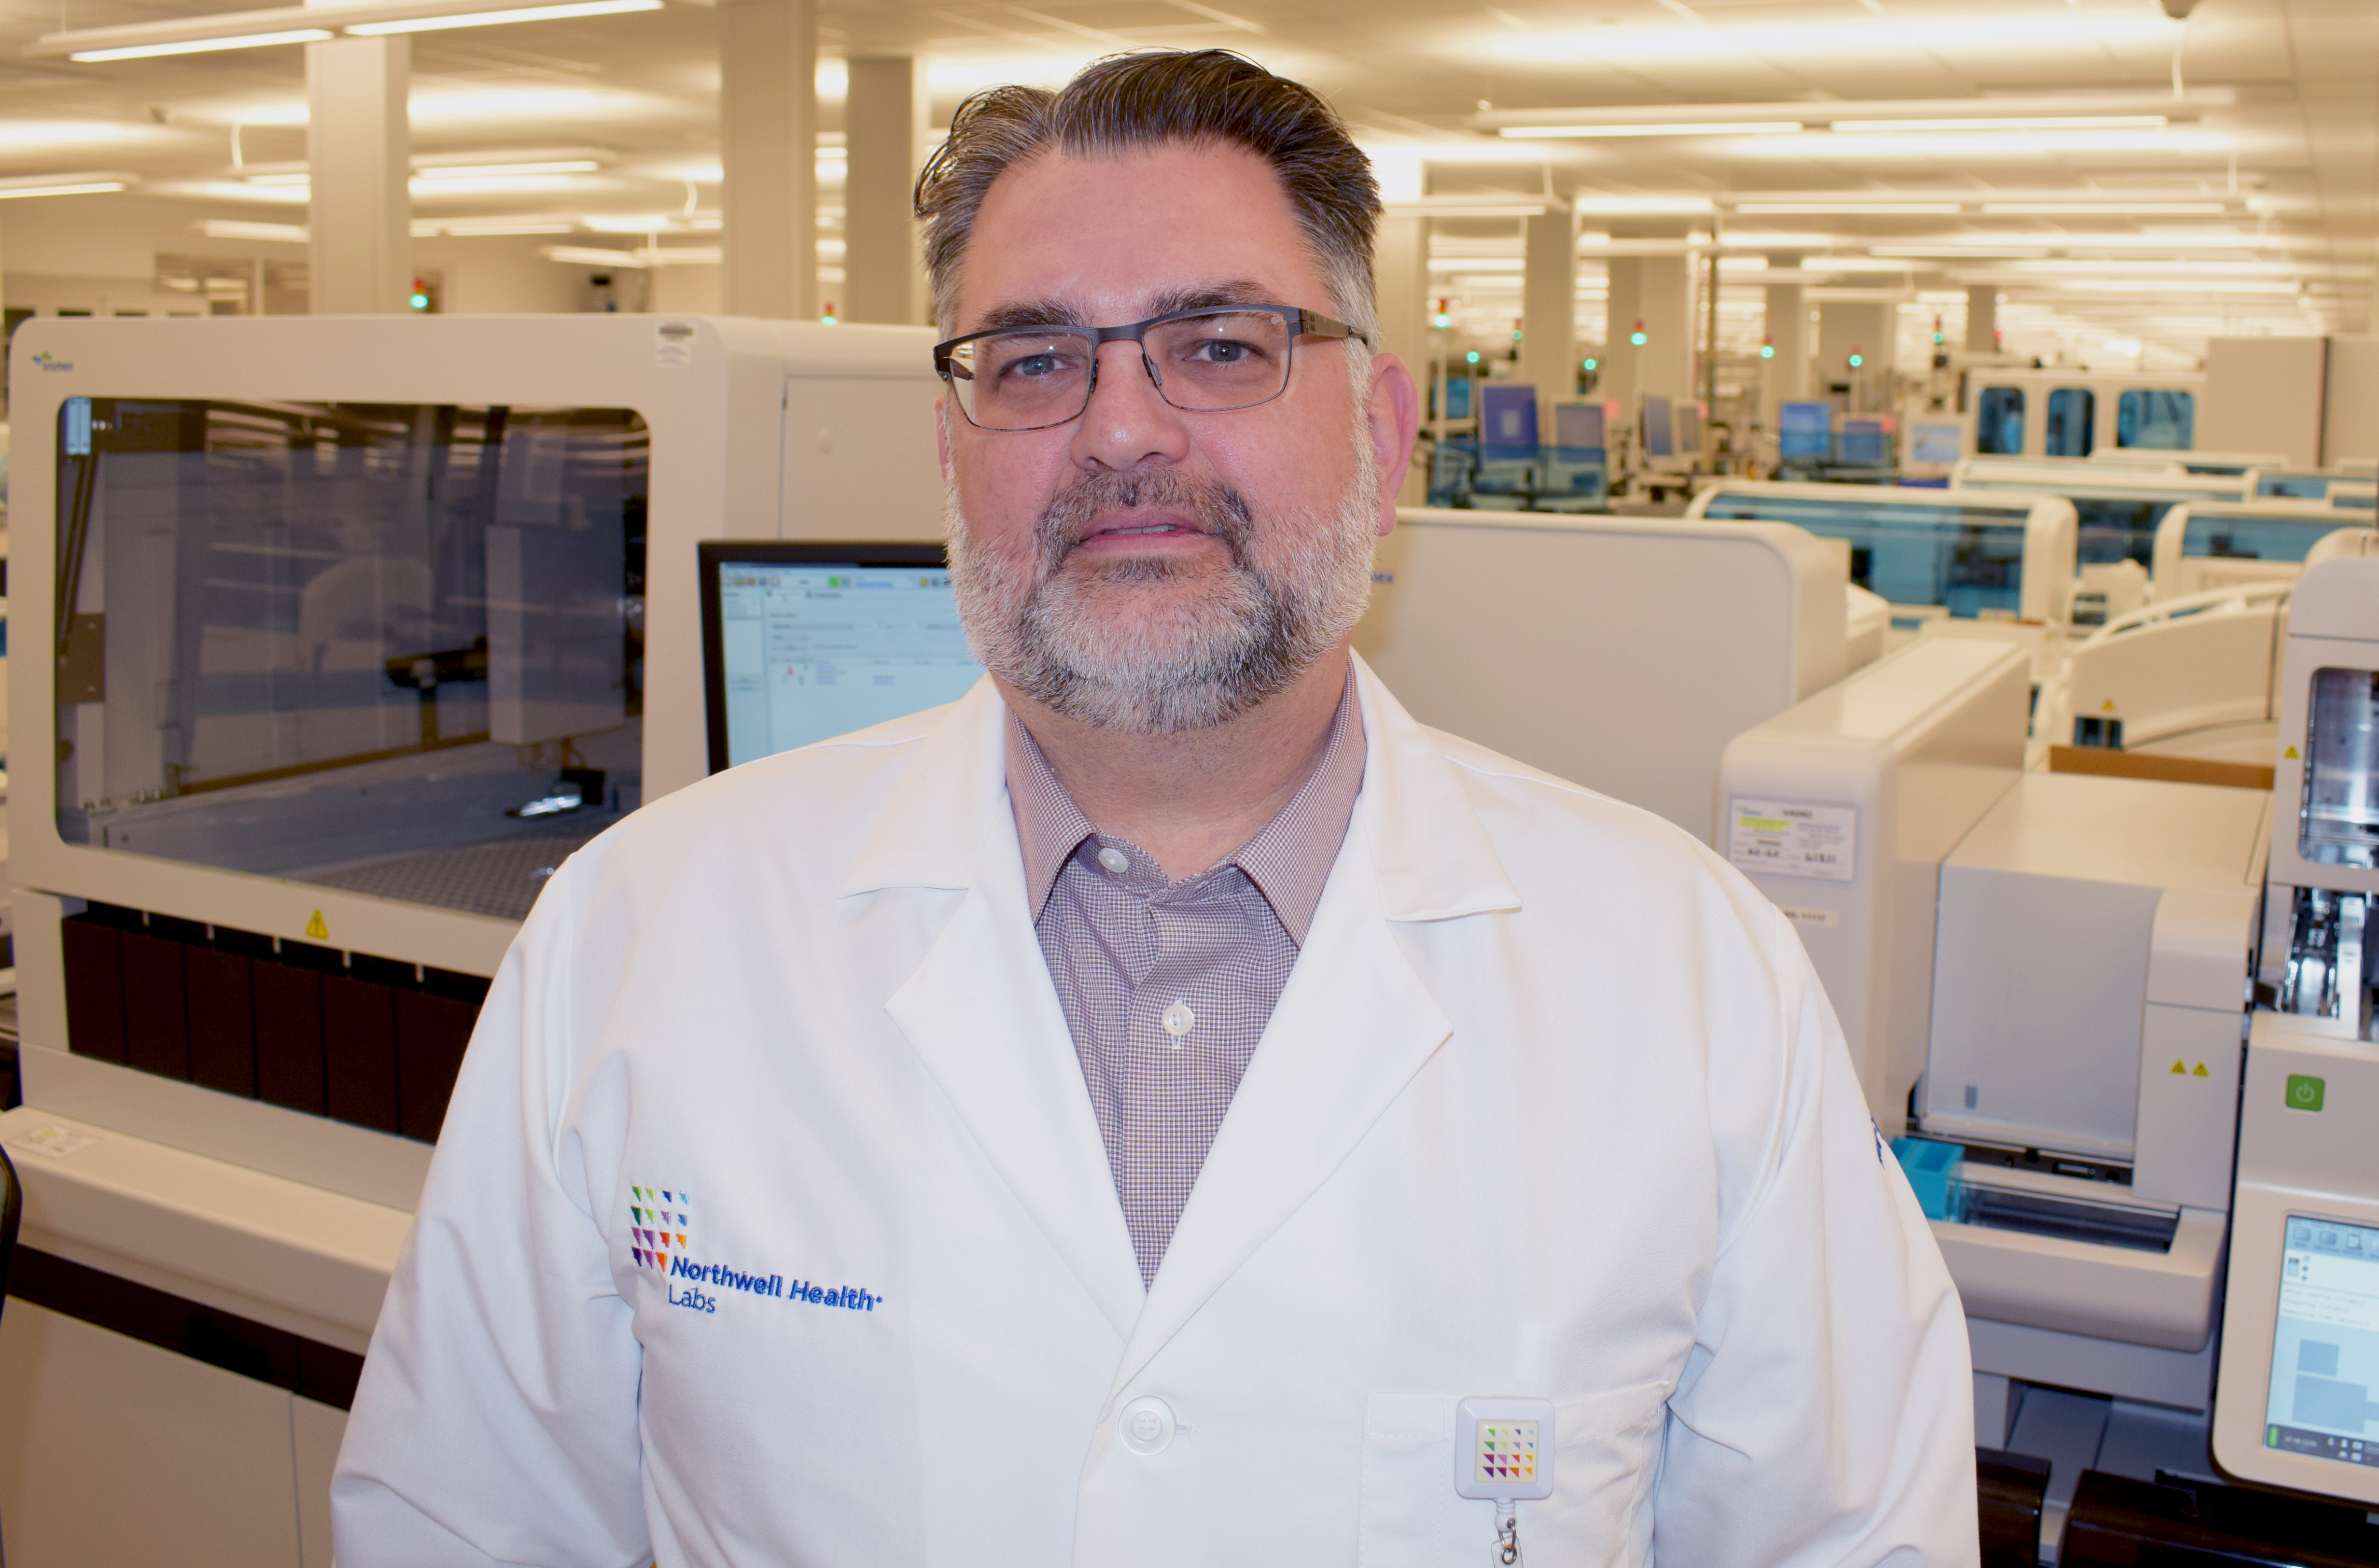 Northwell moves into new Lake Success laboratory - News - The Island Now